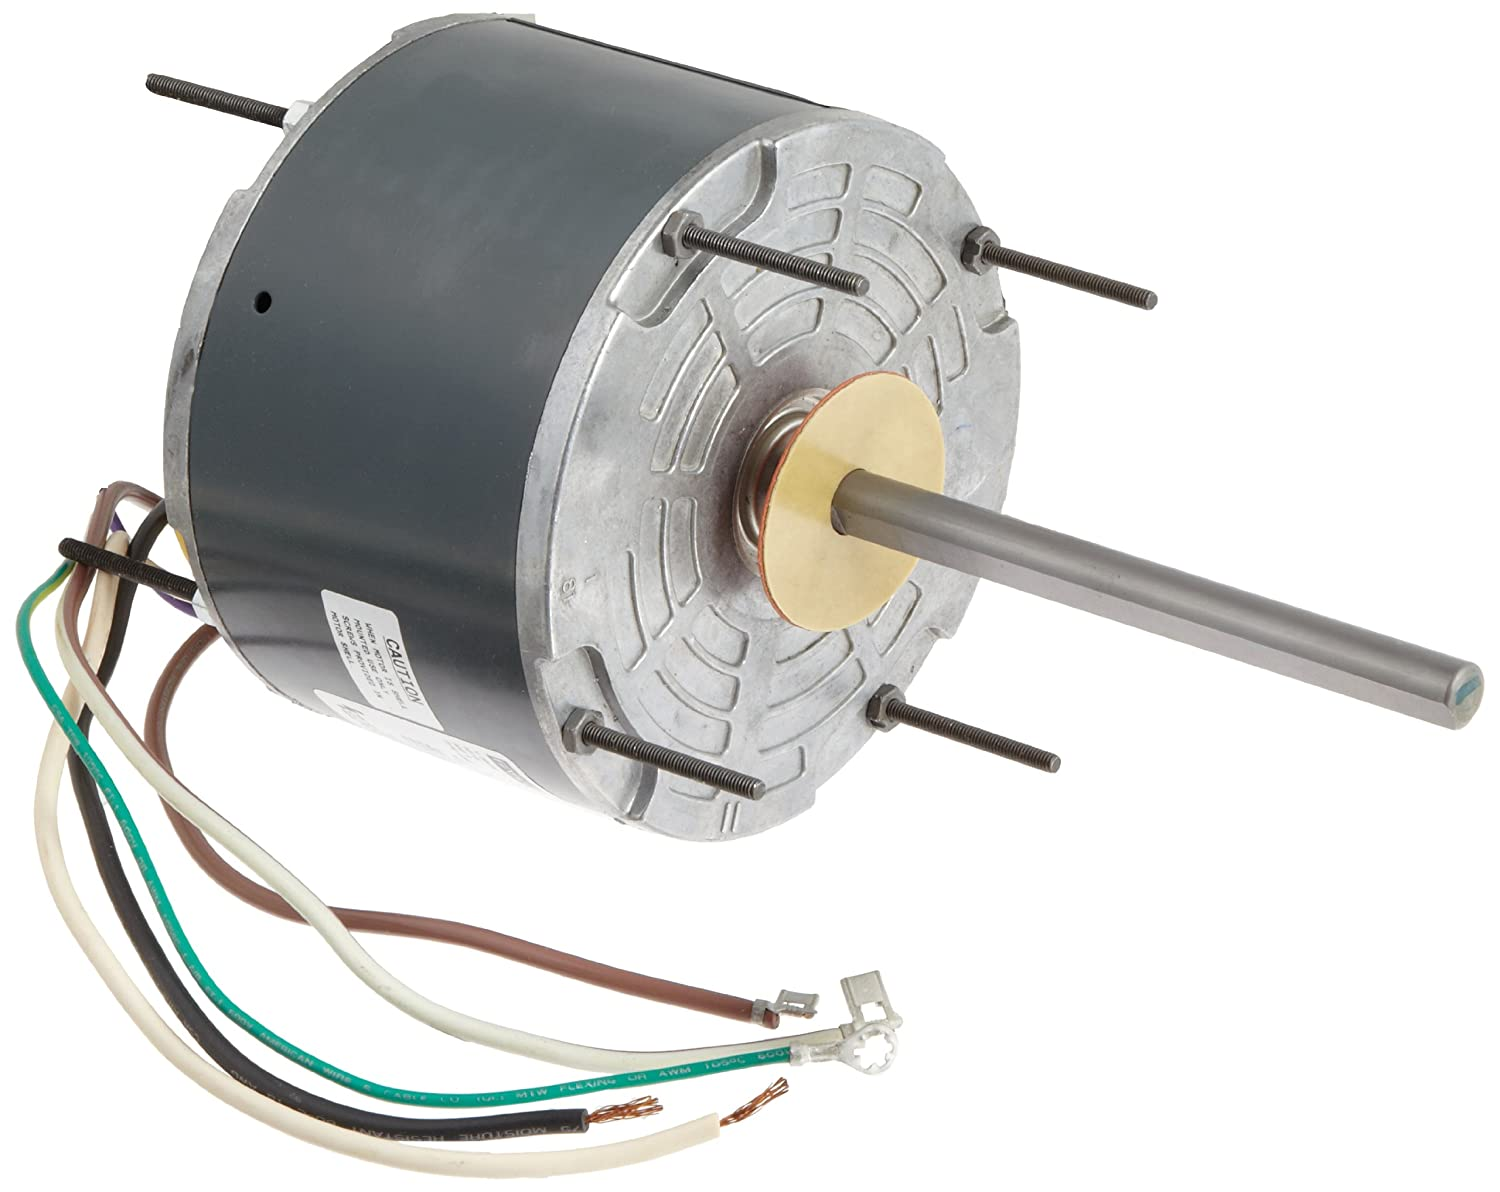 Condenser Ceiling Fan Connection With Capacitor